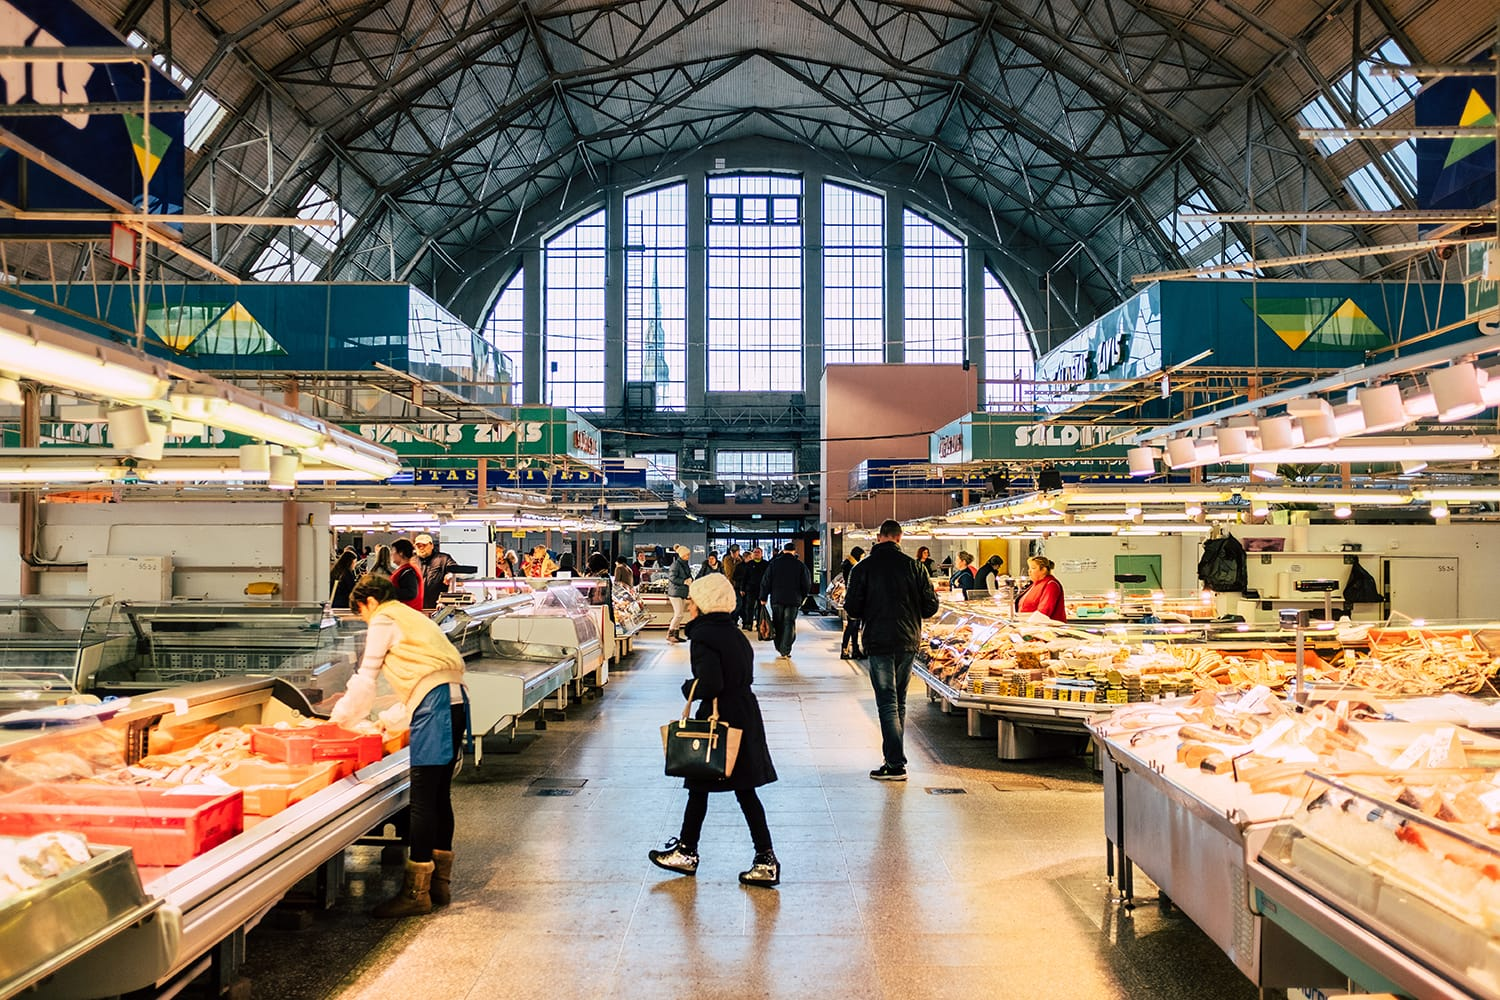 Central Market in Riga, Latvia